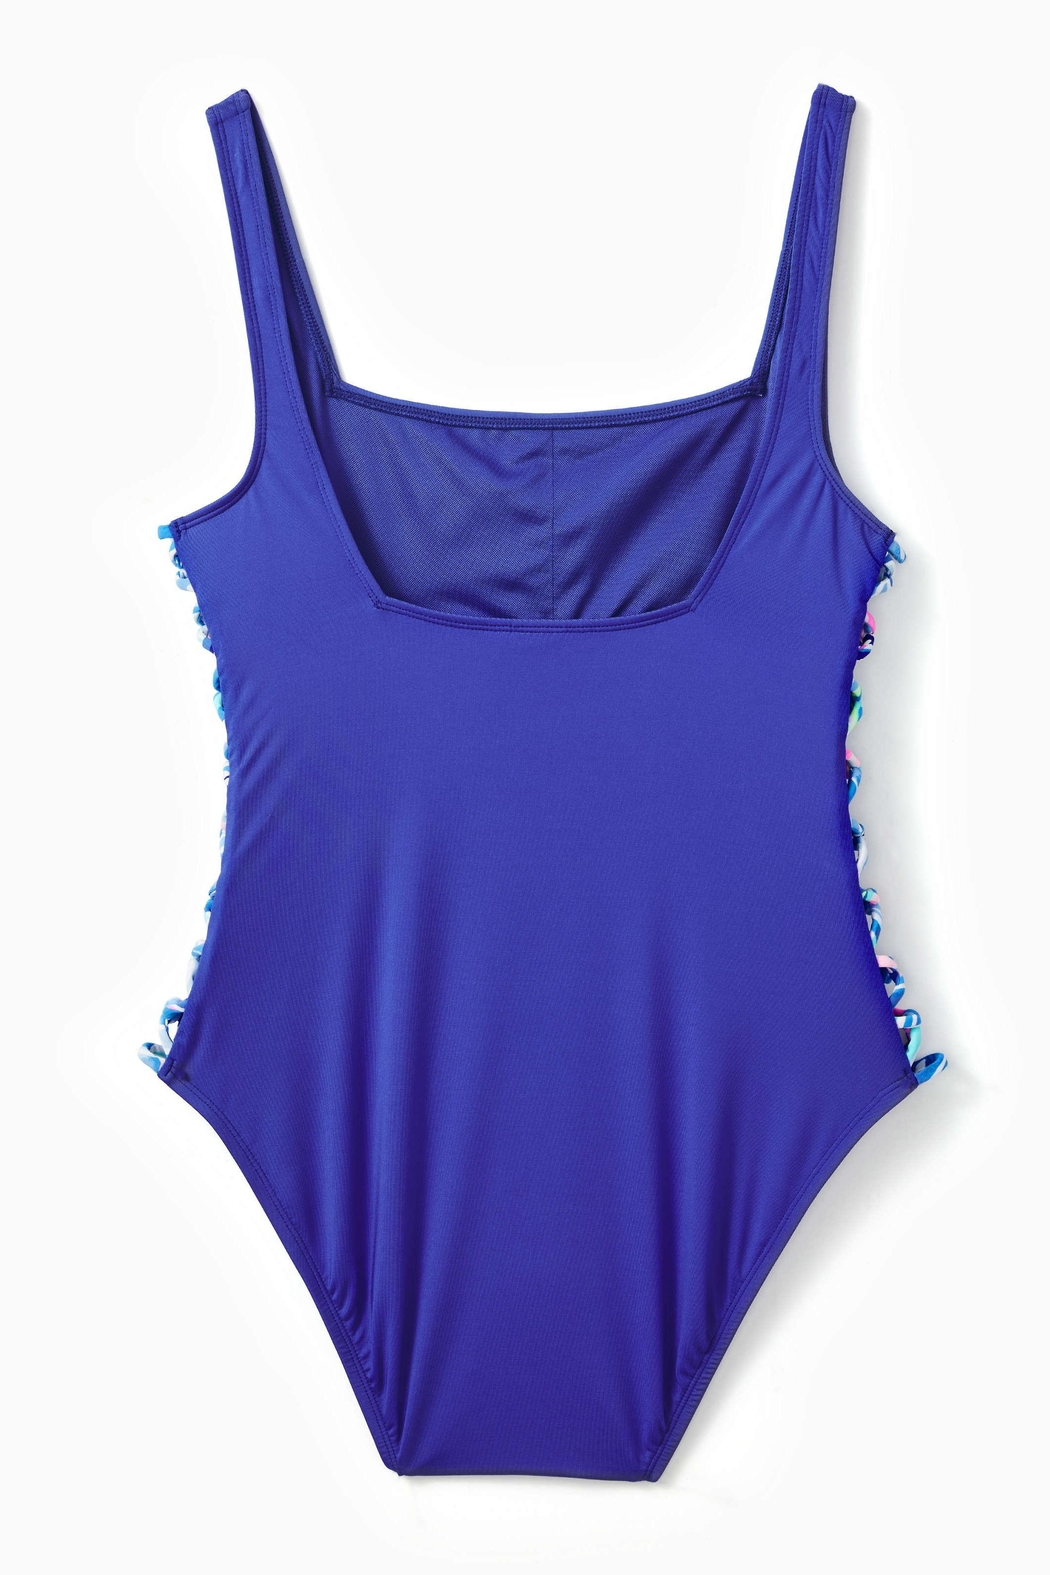 Lilly Pulitzer Morri Squareneck One-Piece - Front Full Image